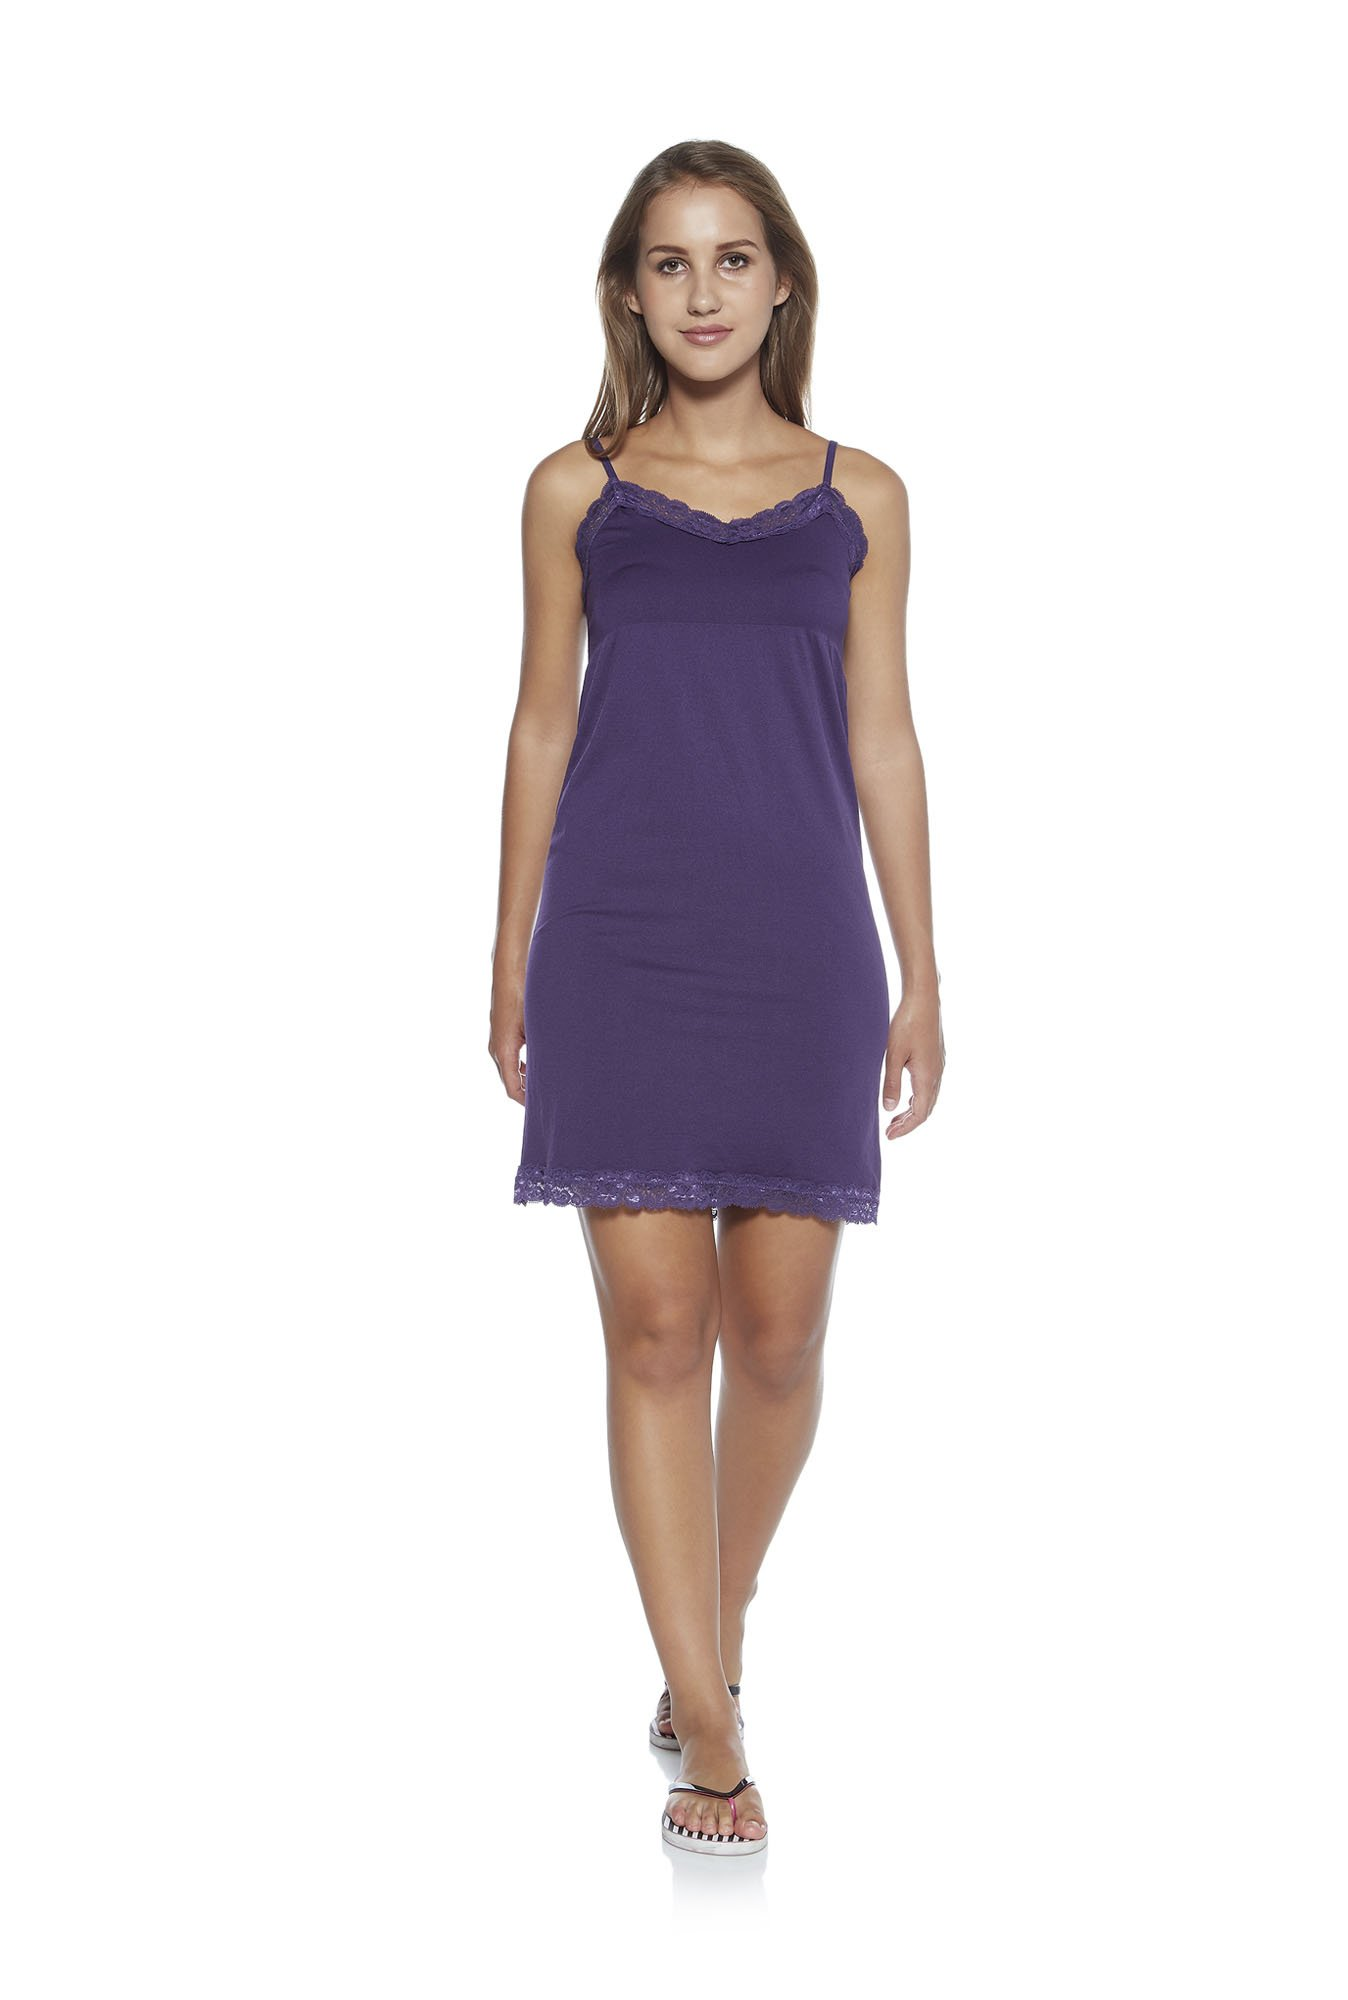 f57ae50539 Buy Wunderlove by Westside Purple Lace Detail Chemise for Women ...